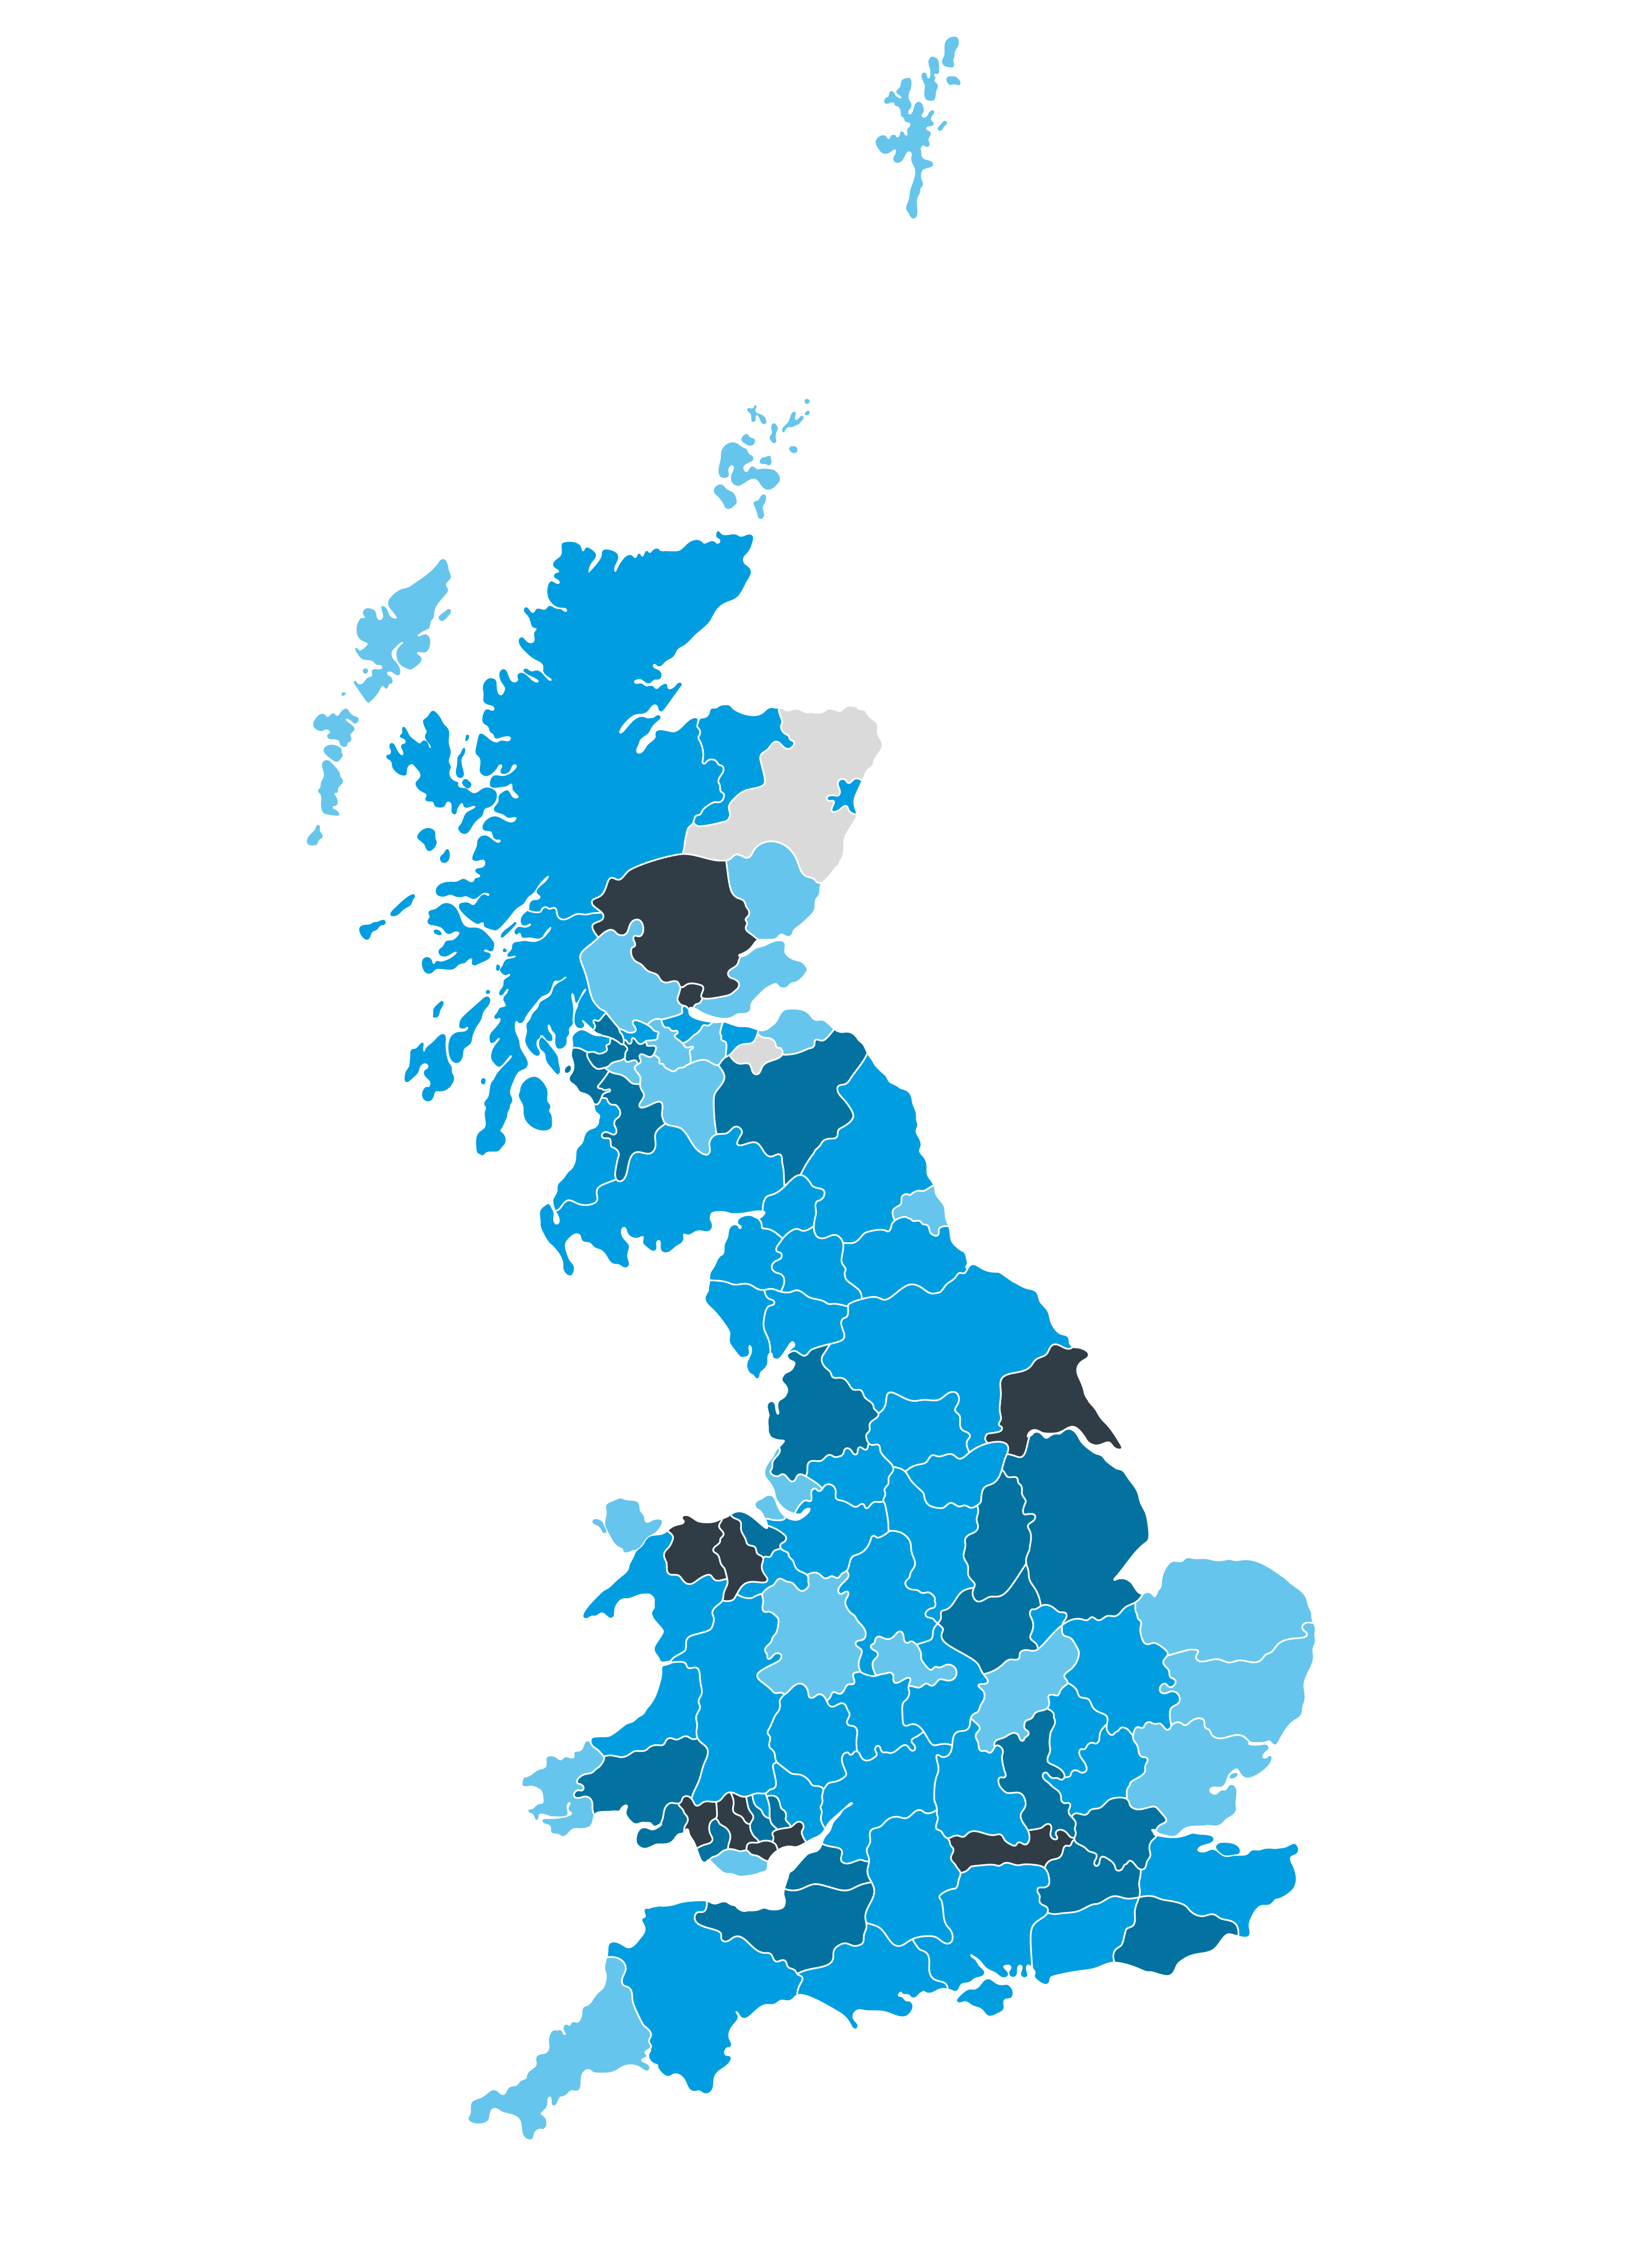 Map of the UK with different regions shaded blue to indicate flood risk